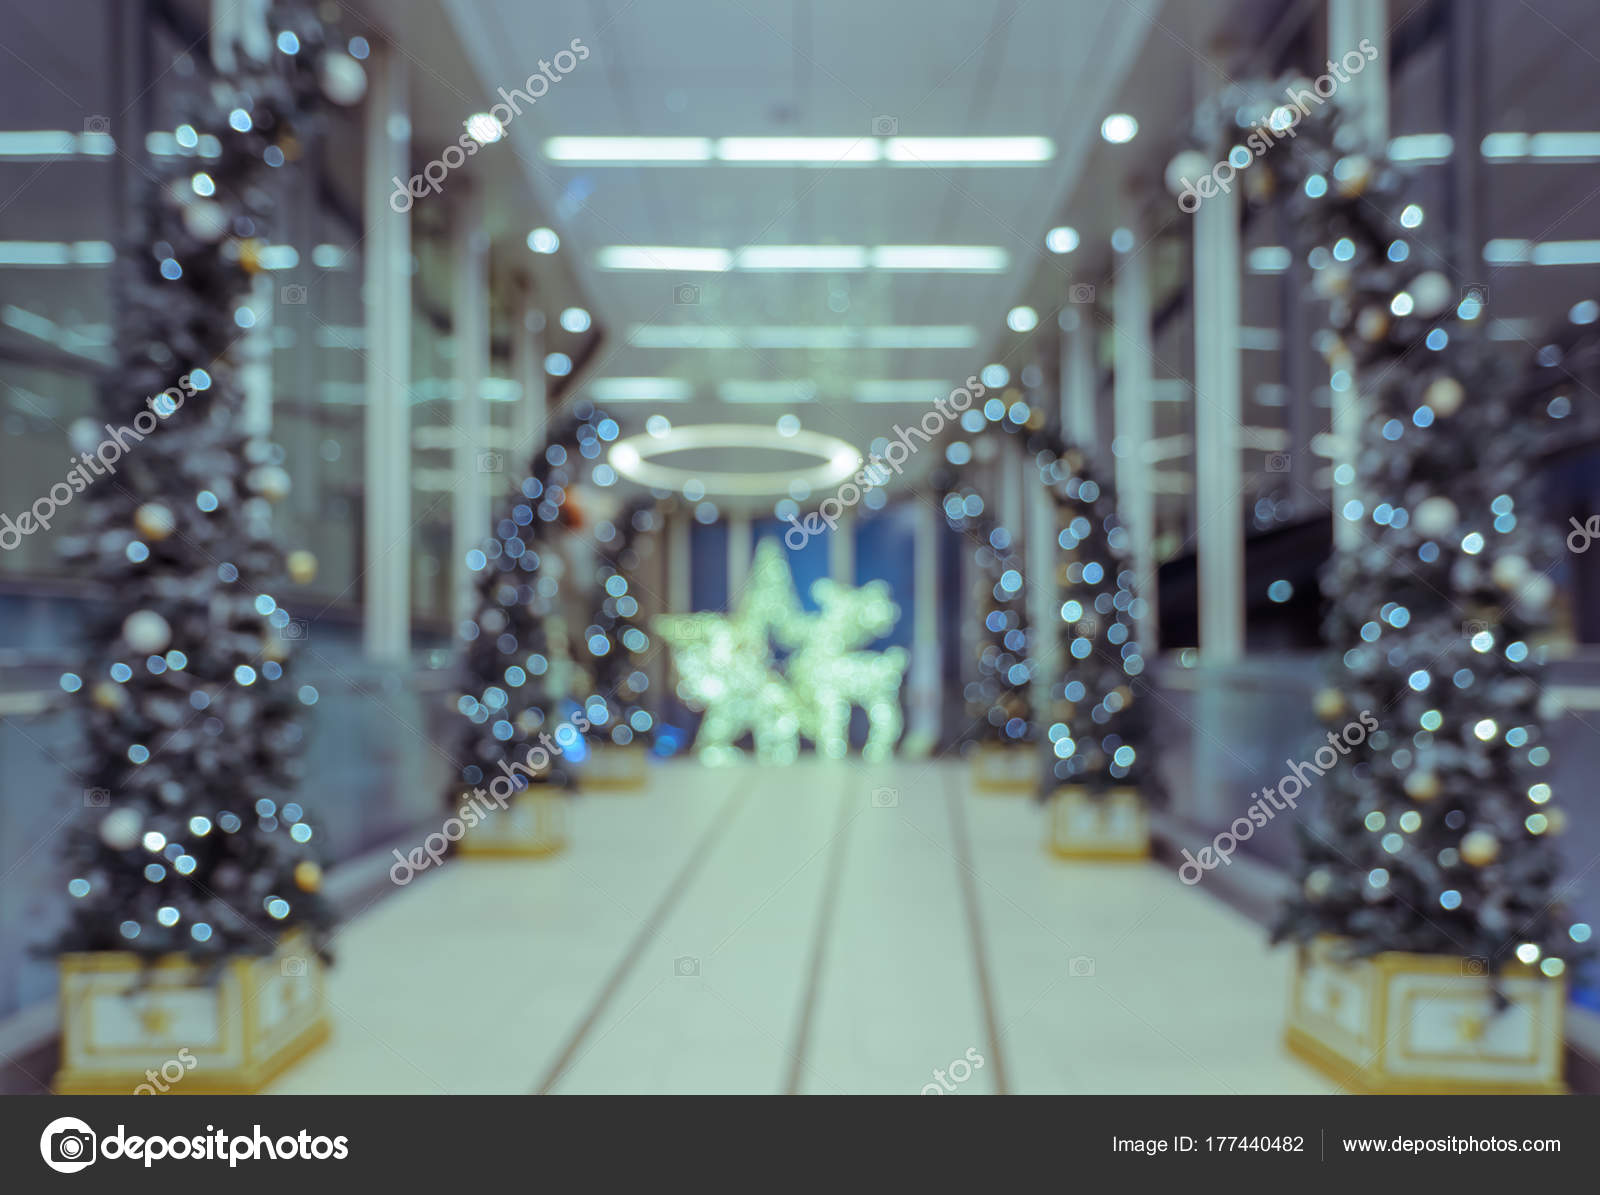 blurred abstract background of office hotel lobby or shopping mall building indoor with light illuminated christmas tree photo by boonsom